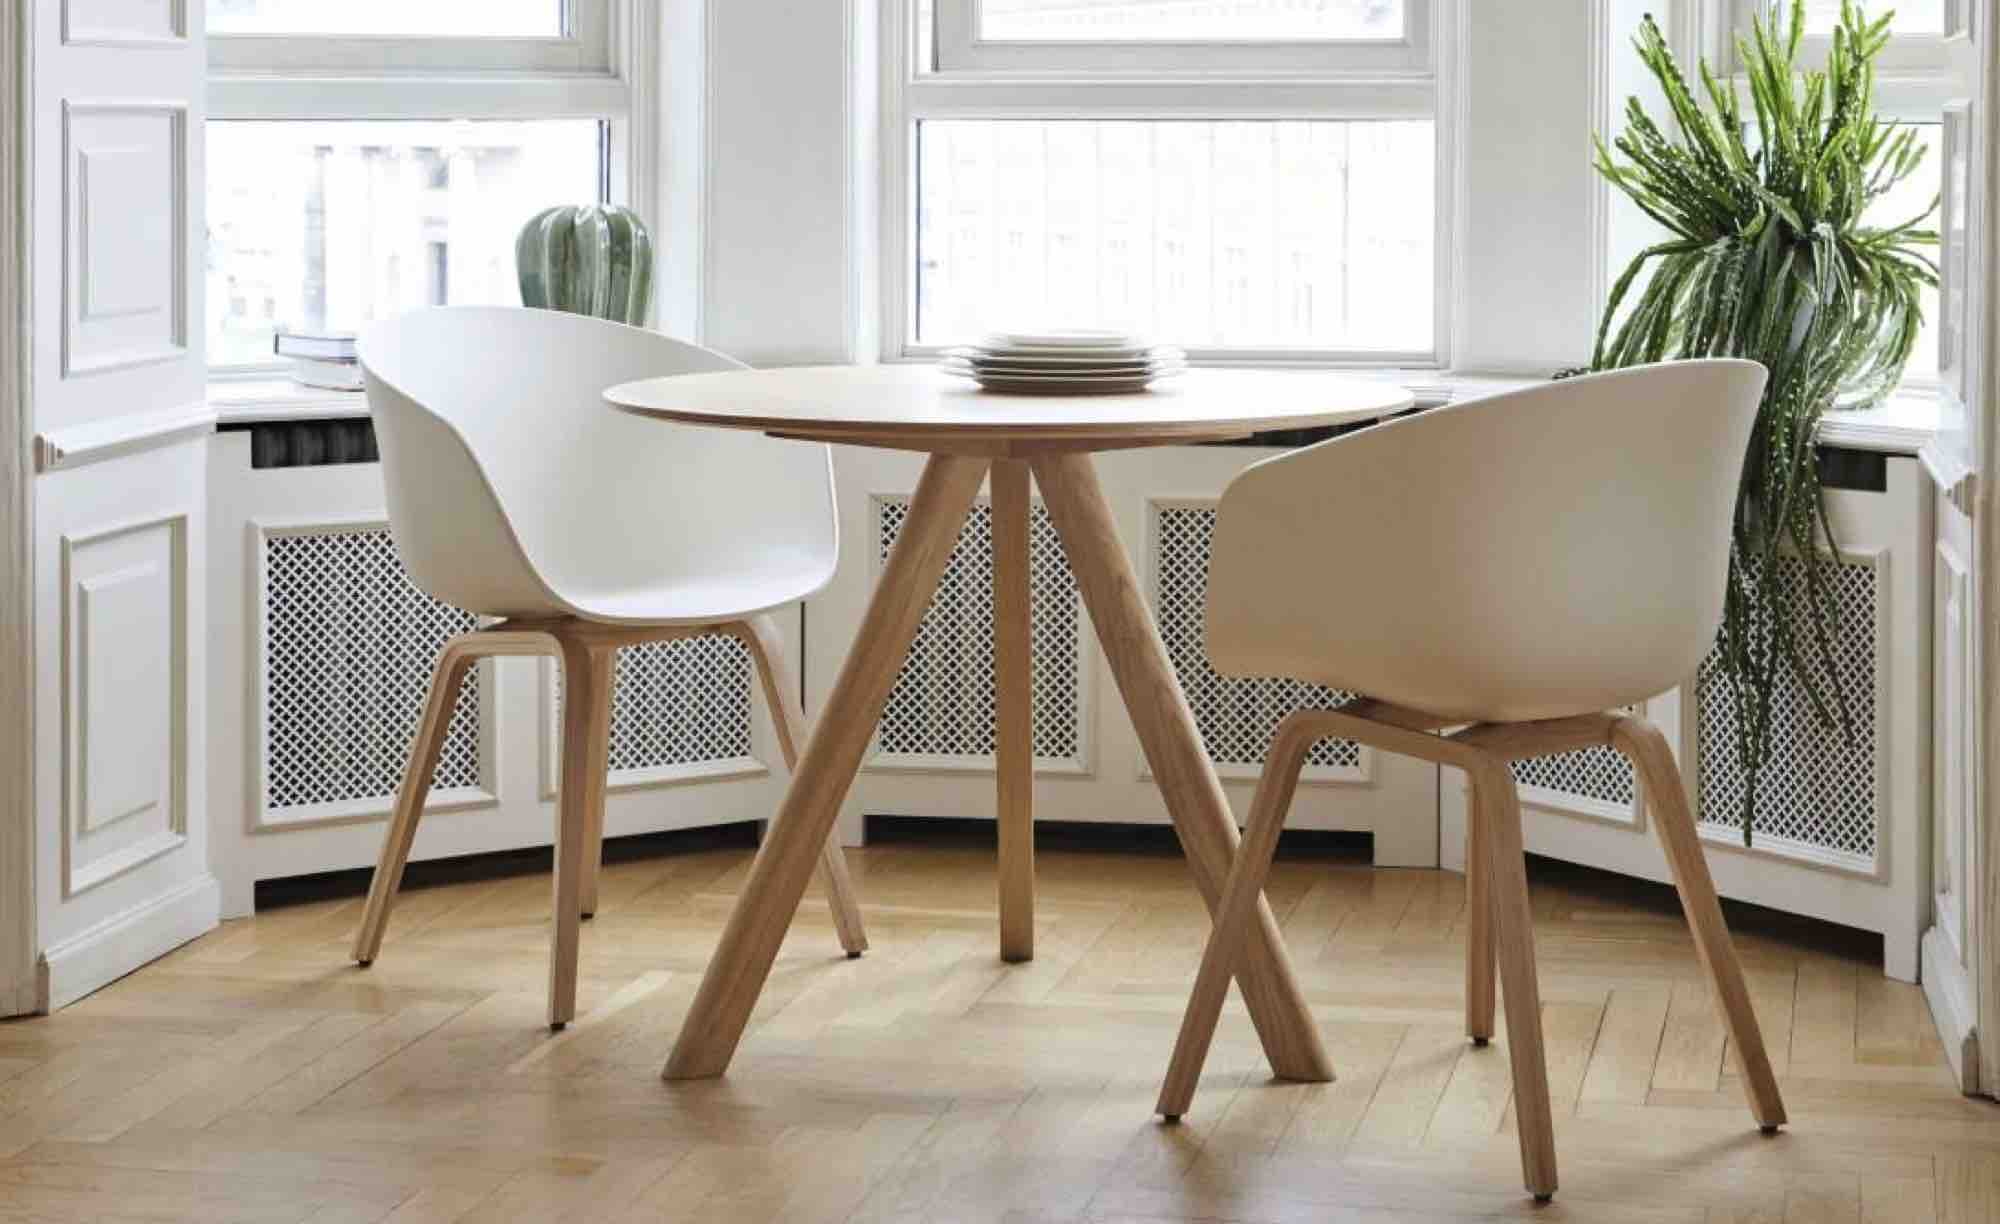 Hay Copenhague Table Round met kuipstoel AAC Ninove